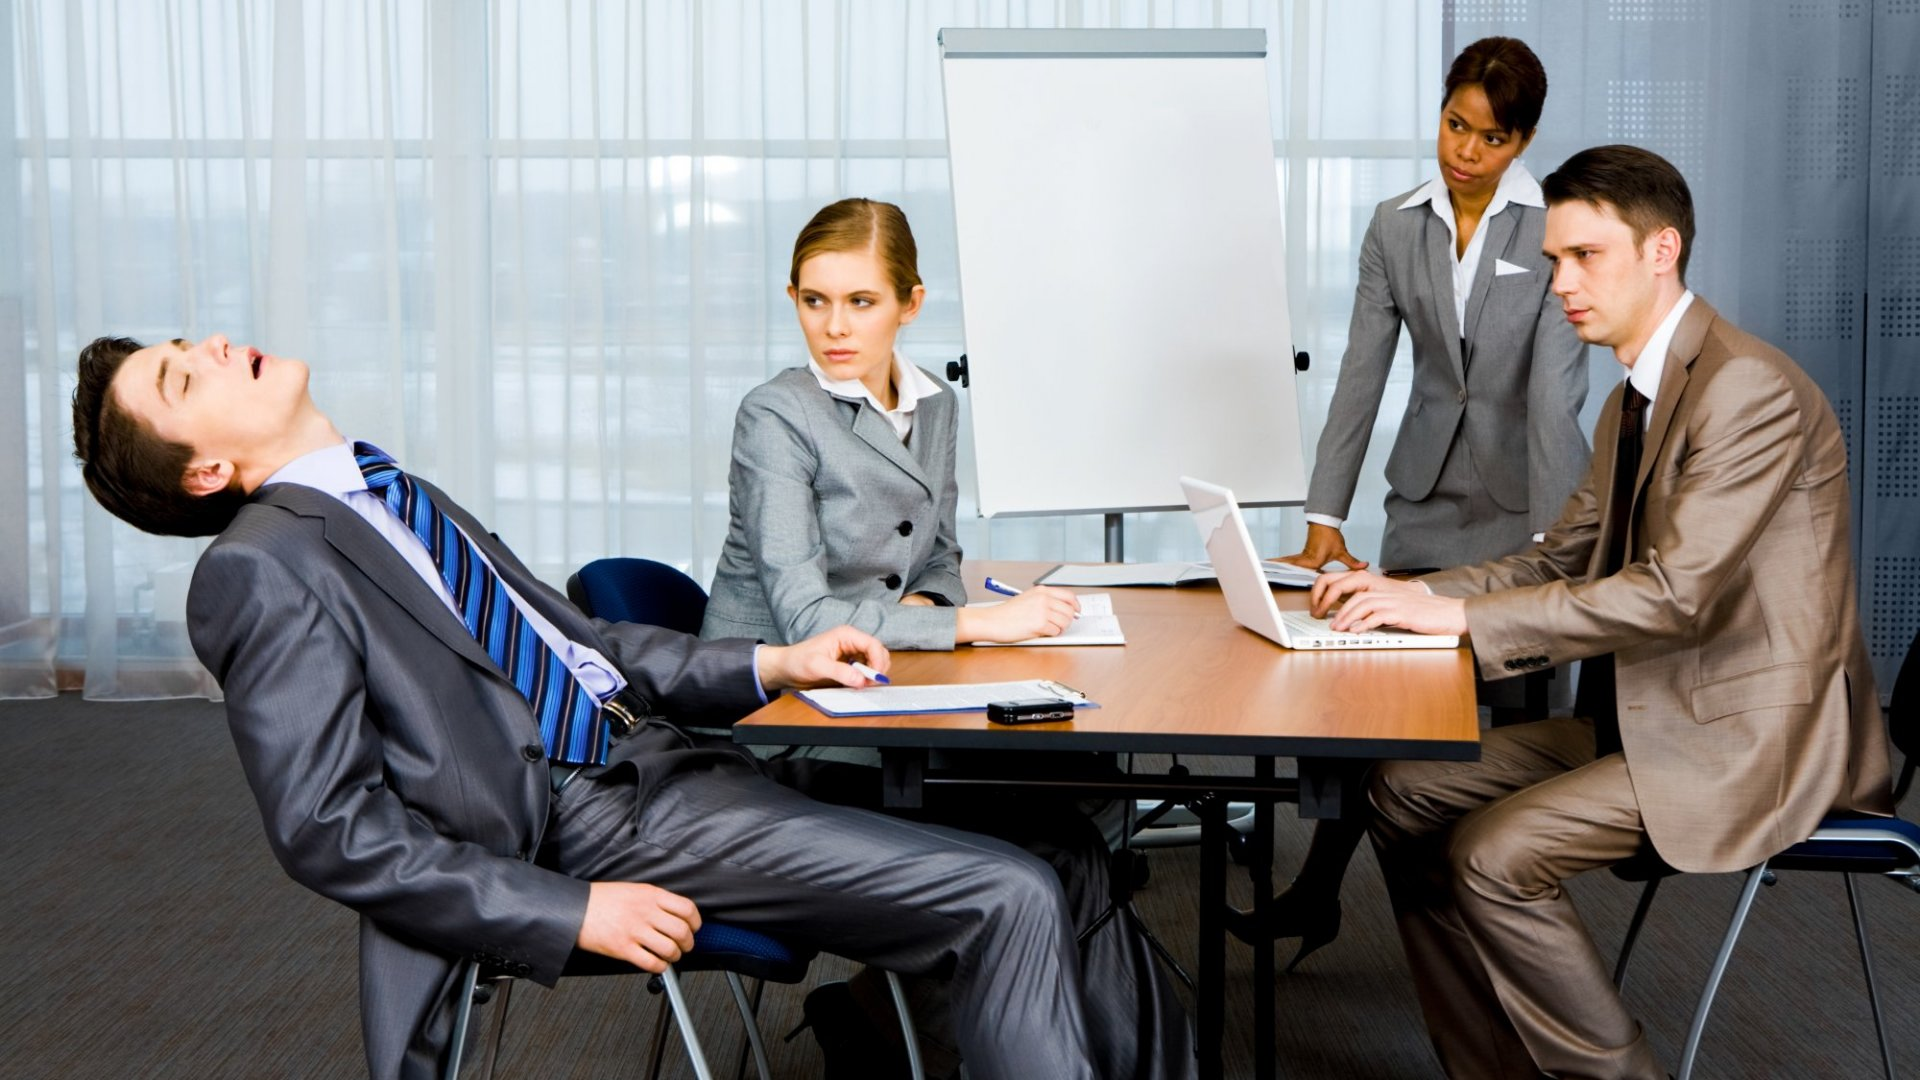 How Can I Address My Employee's Bad Attitude?